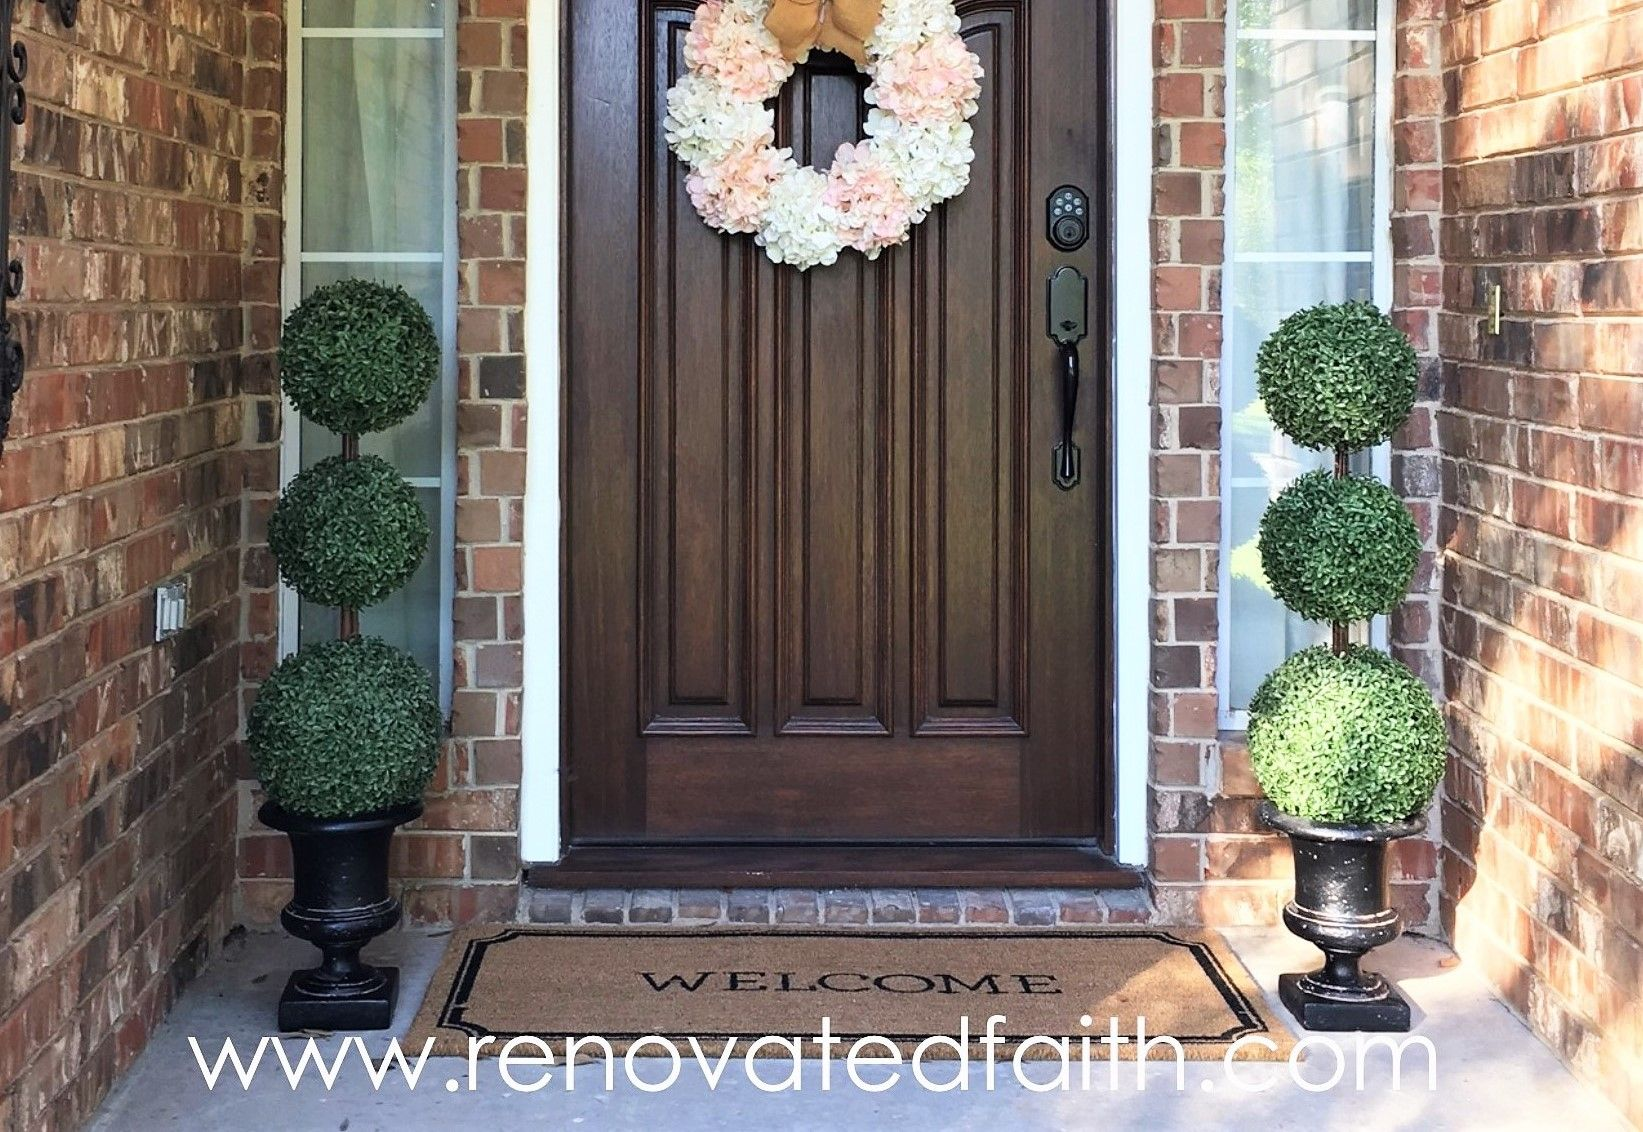 My Topiary Trees Have To Be One Of My Favorite Diy Projects To Date They Make Such An Inviting Statement On Topiary Trees Front Porch Decorating Porch Topiary